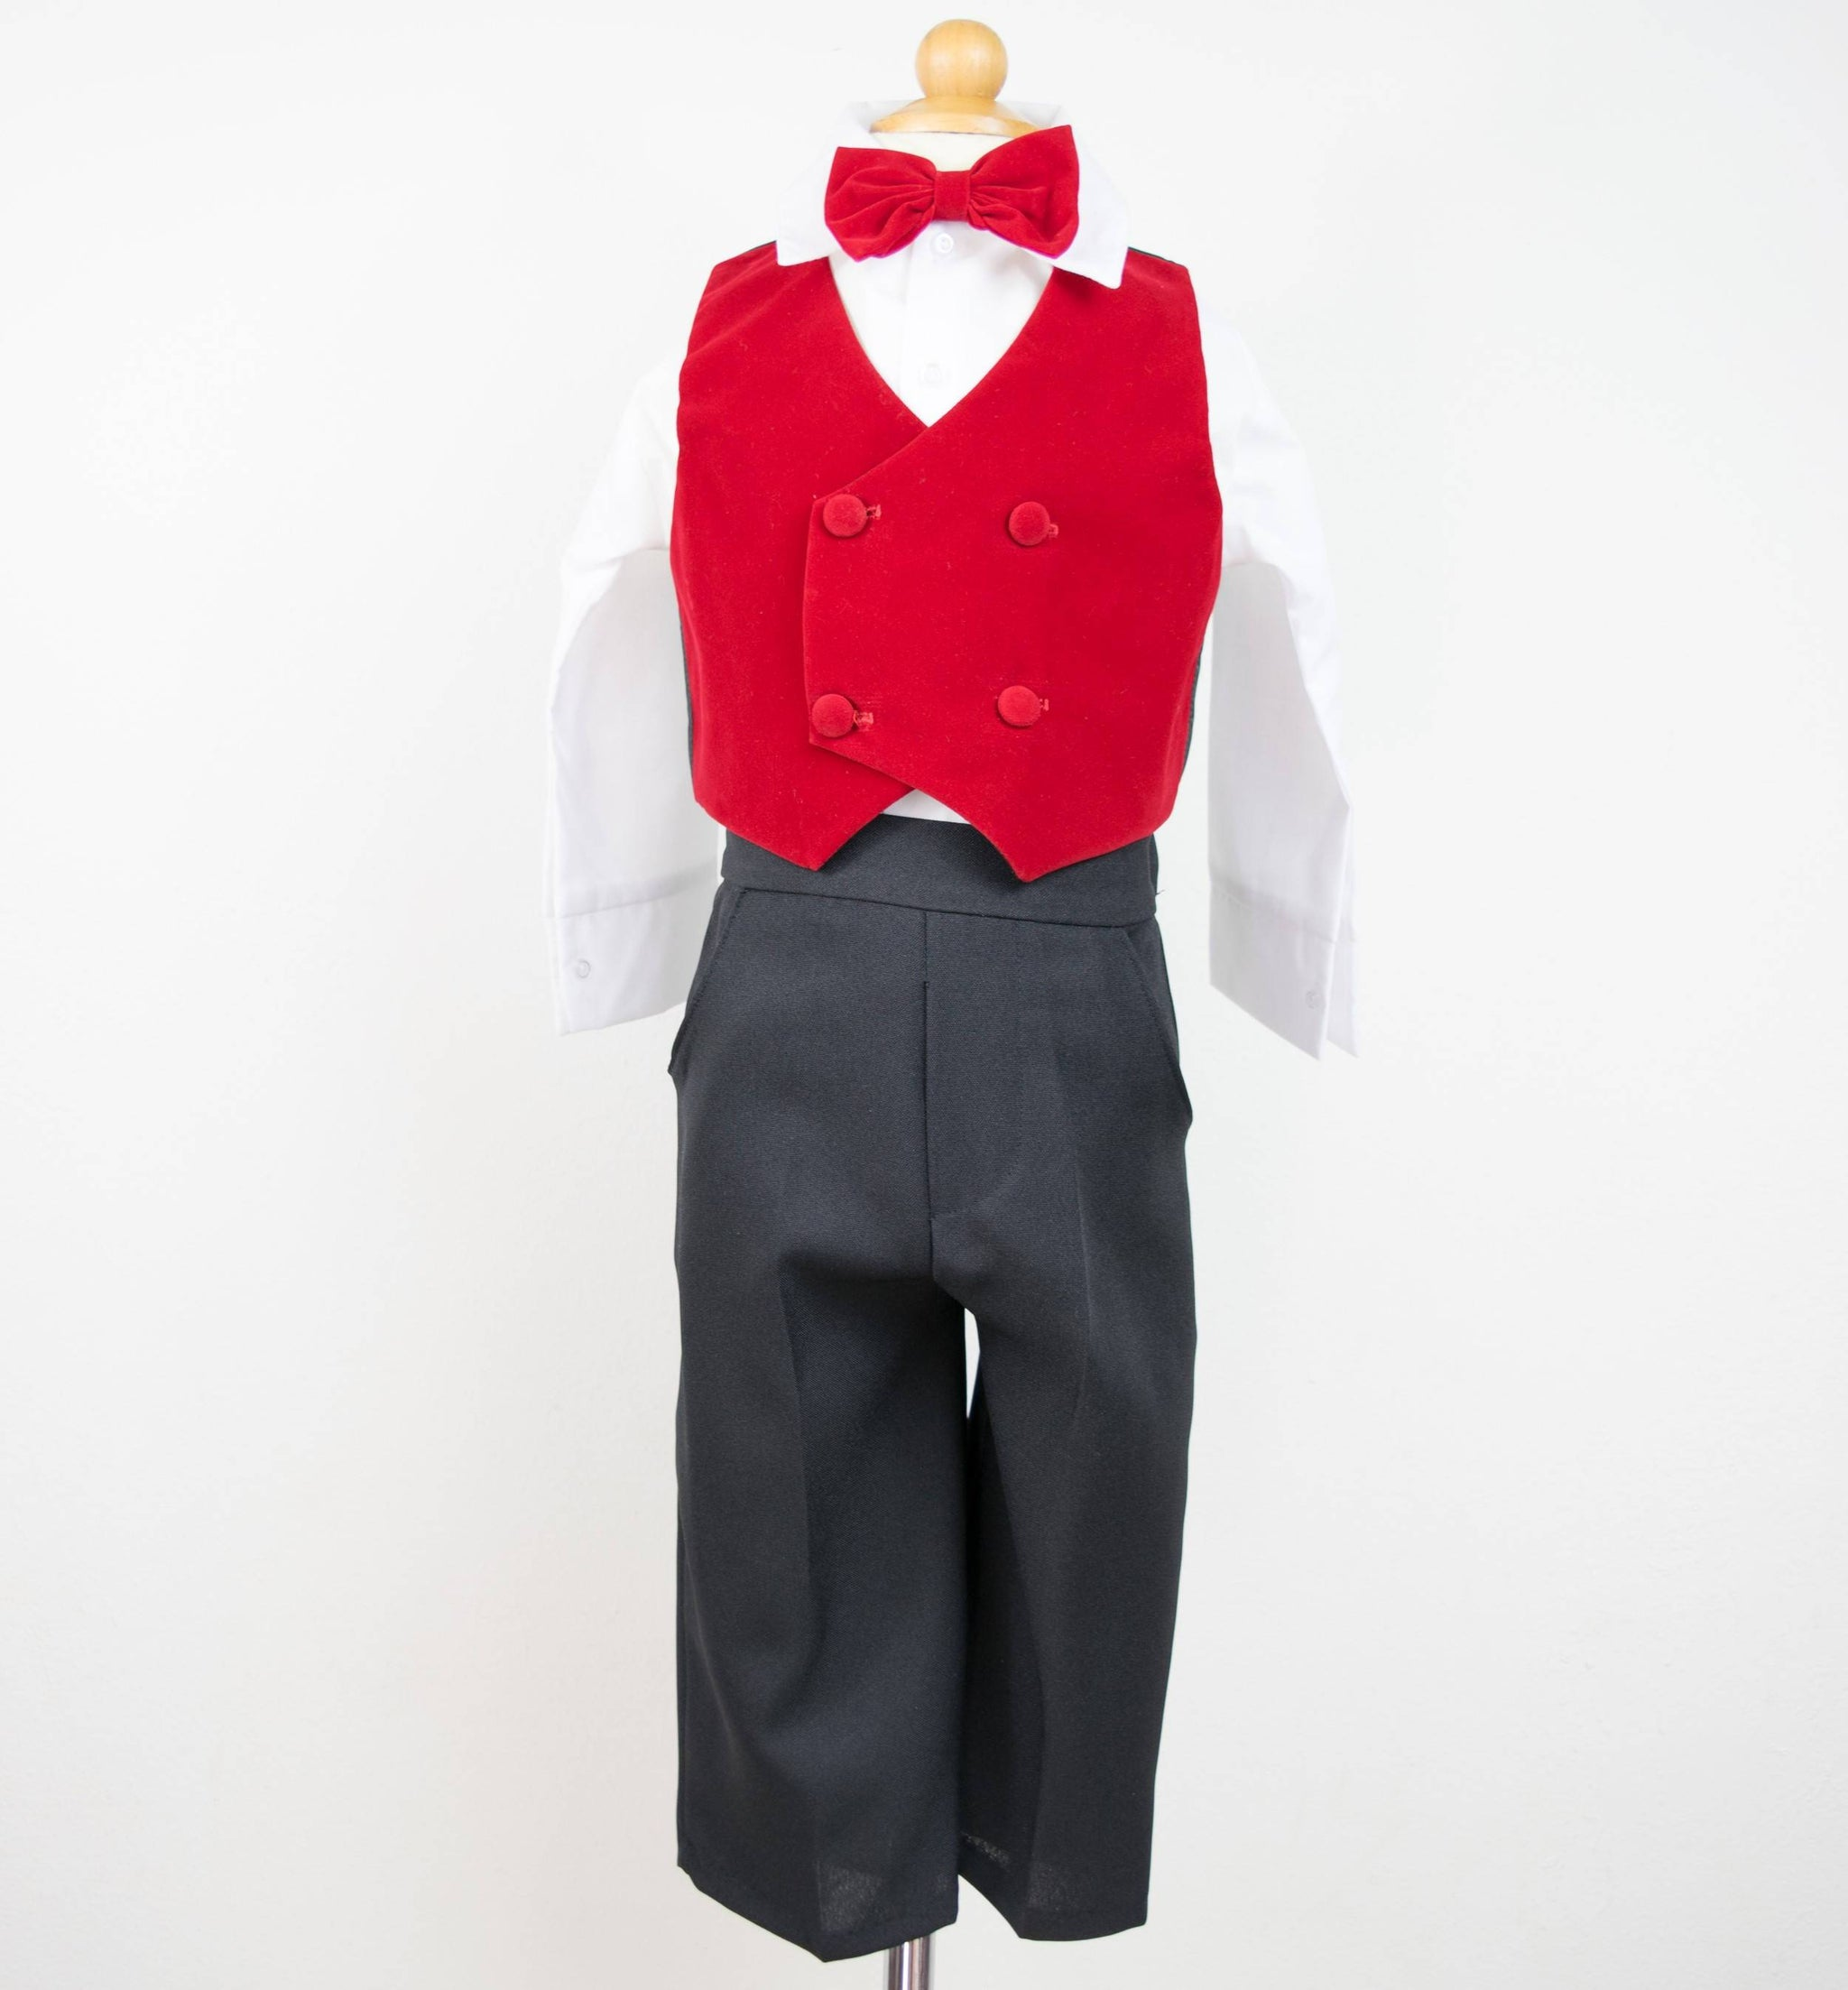 Bowtie Infants 5-pc Knickers Outfit Tuxedo Style with Velvet Suspenders Infants 24 months Newsboy Cap